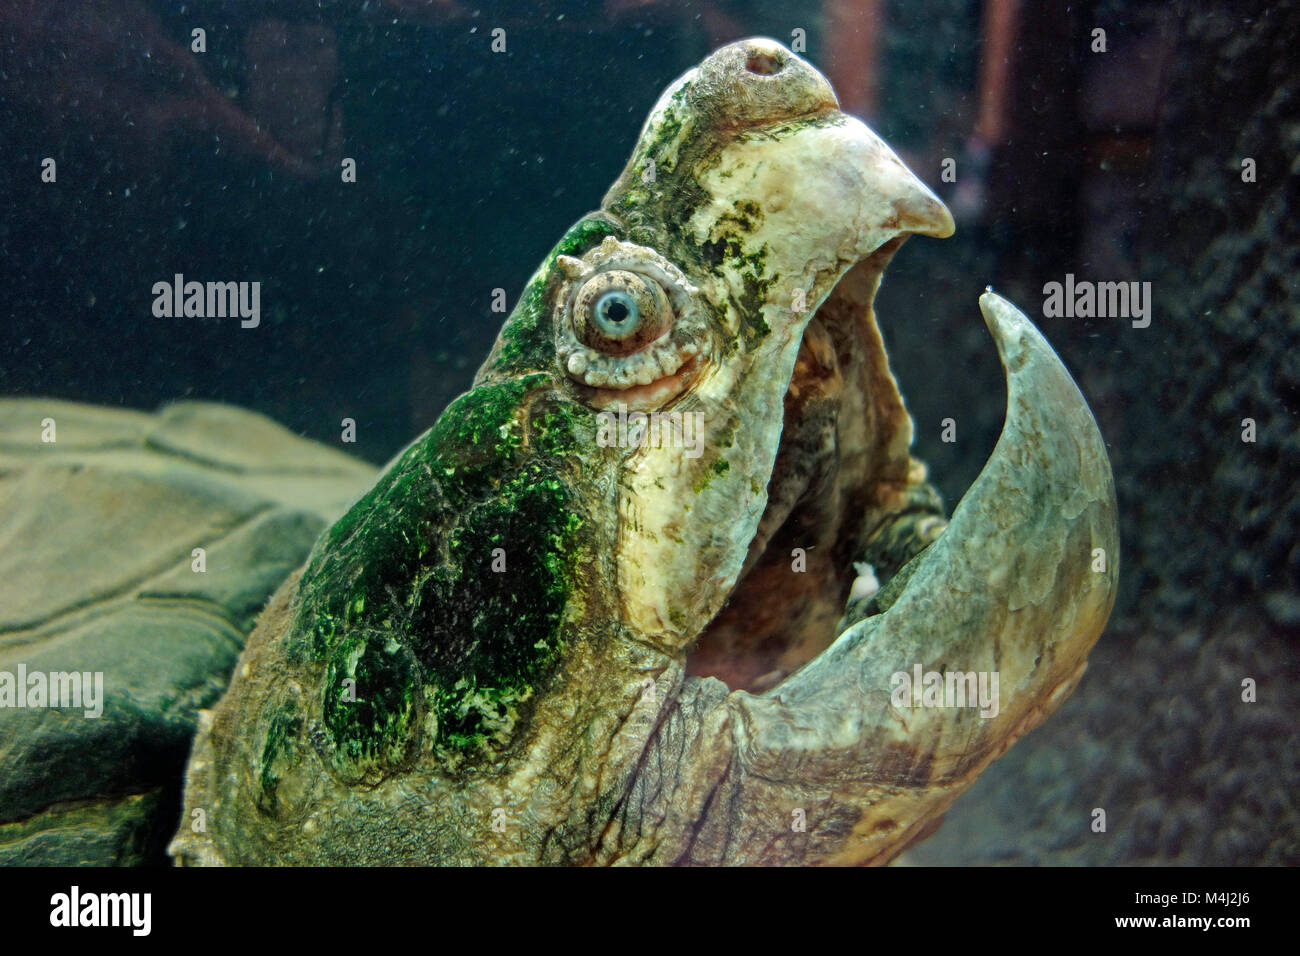 A very old Alligator snapping turtle - Stock Image